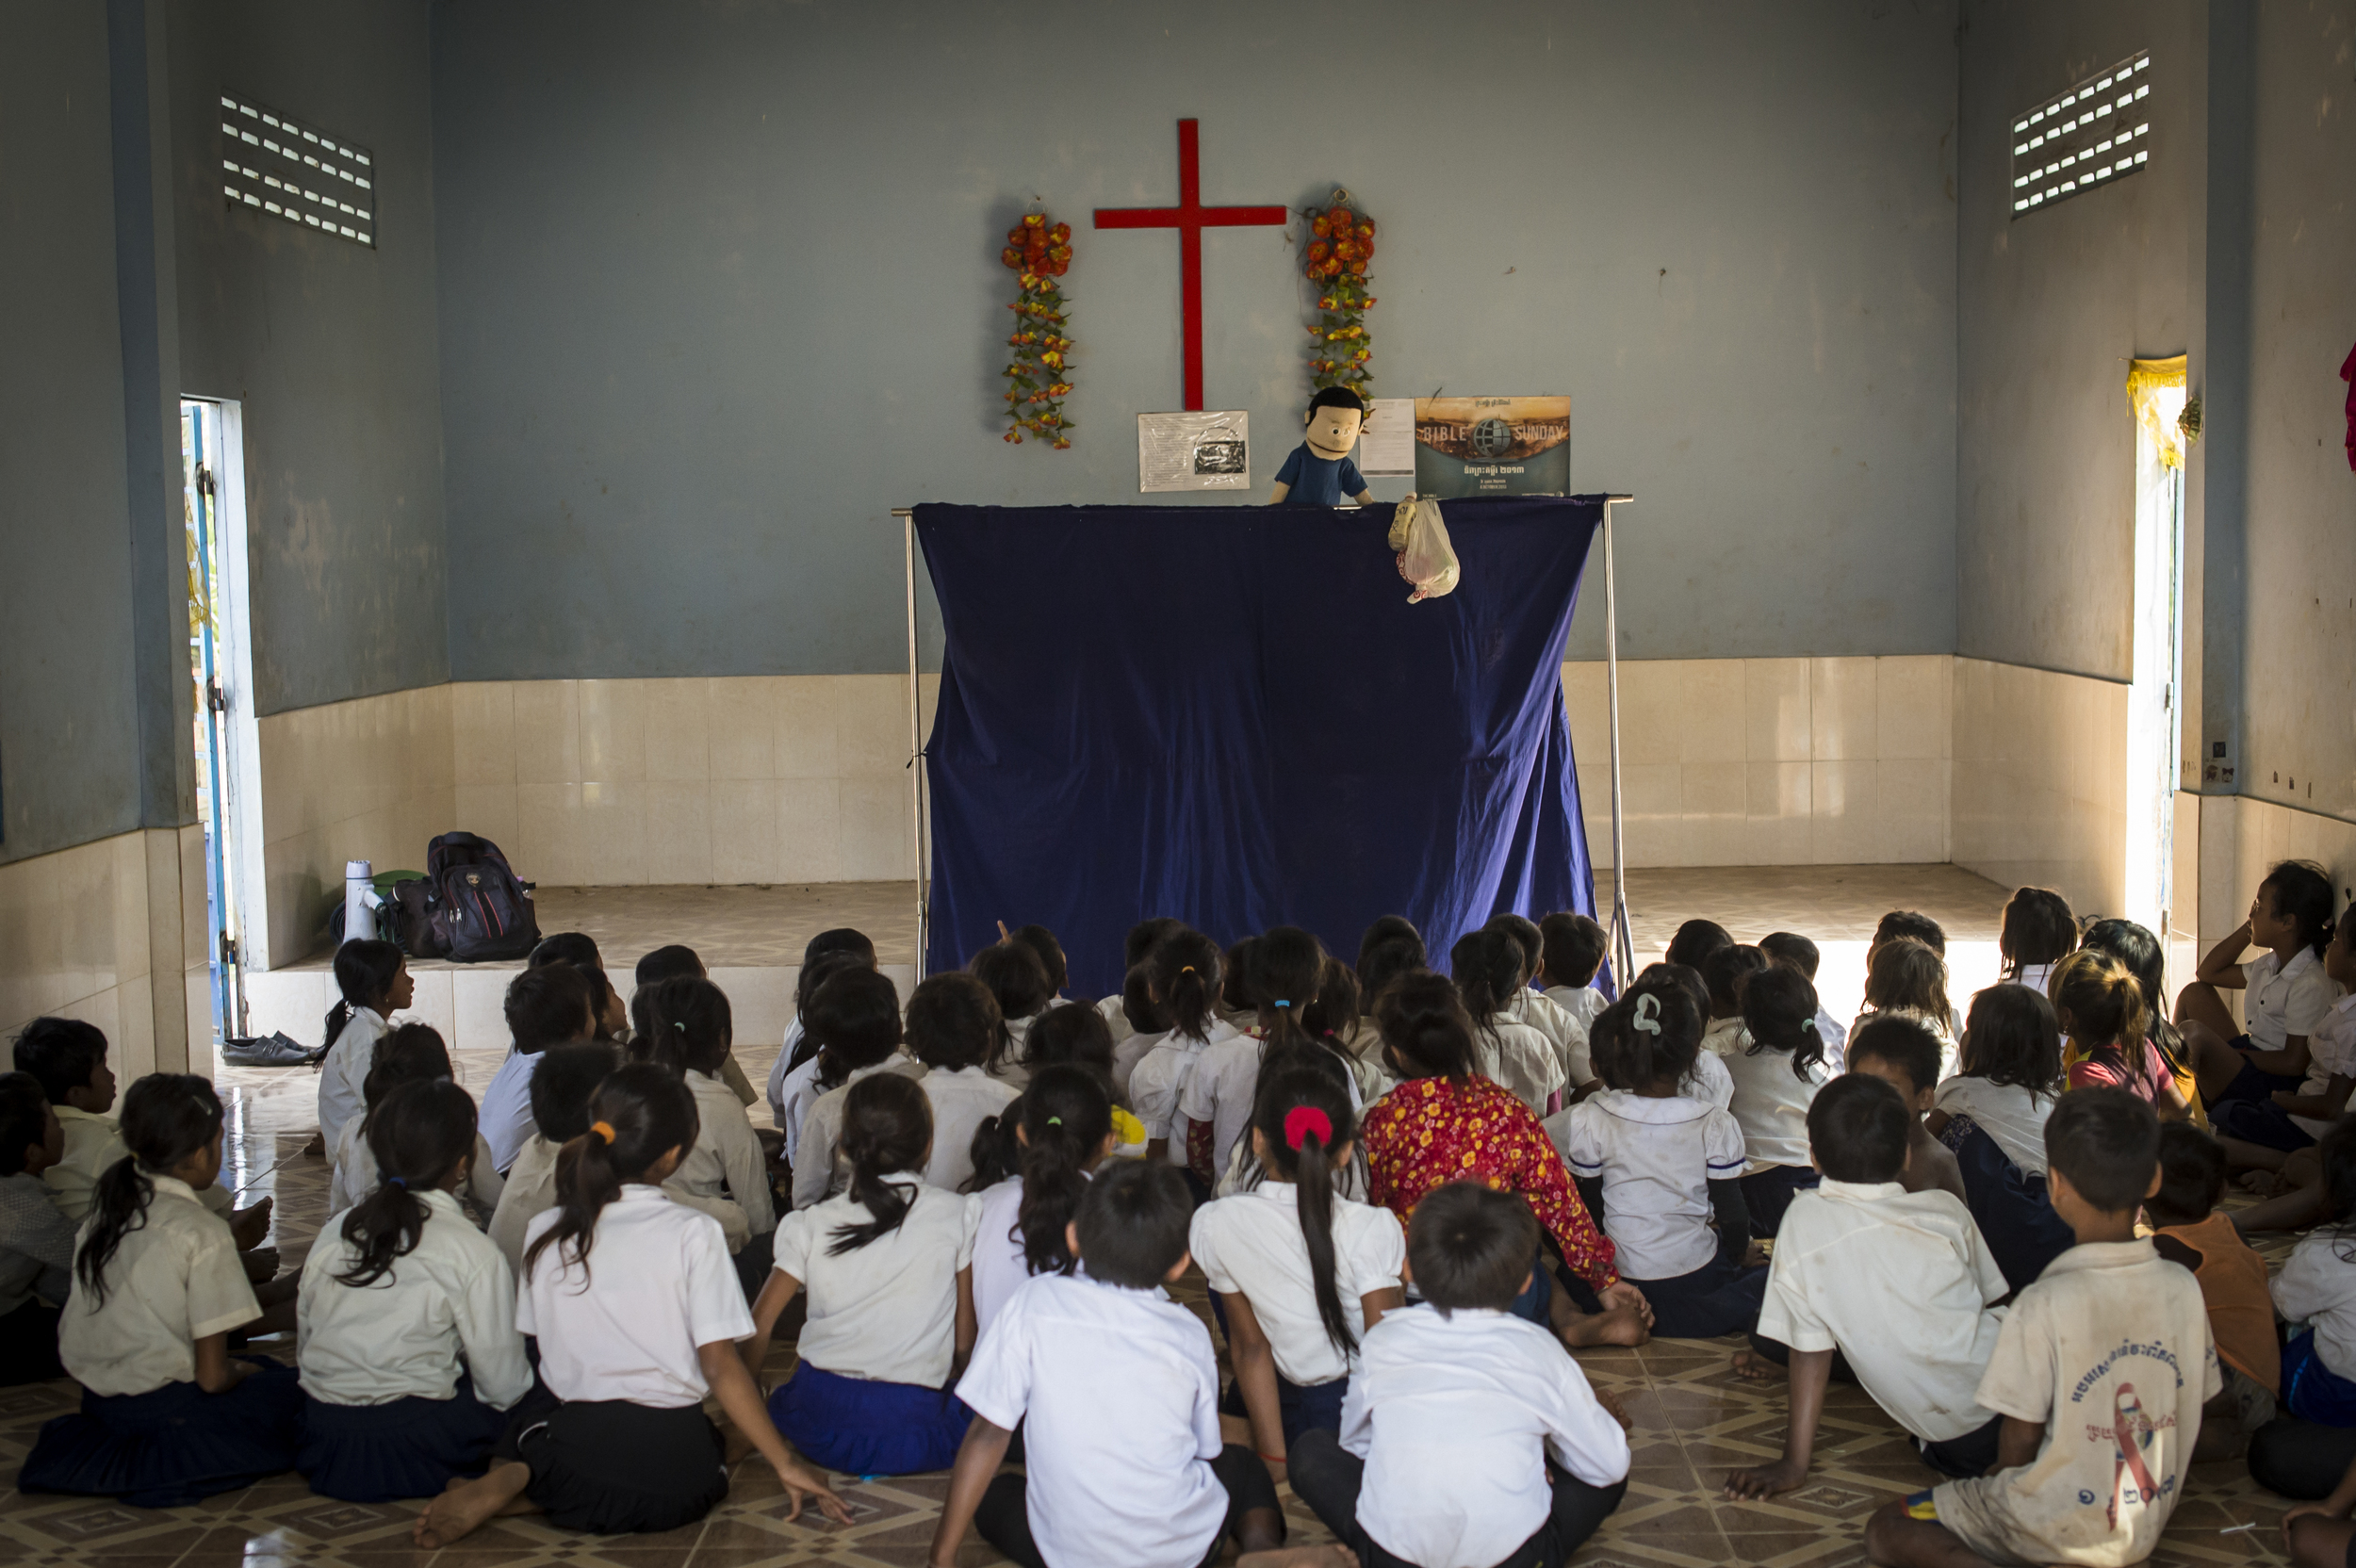 November 7 blog - Puppet show in Cambodia